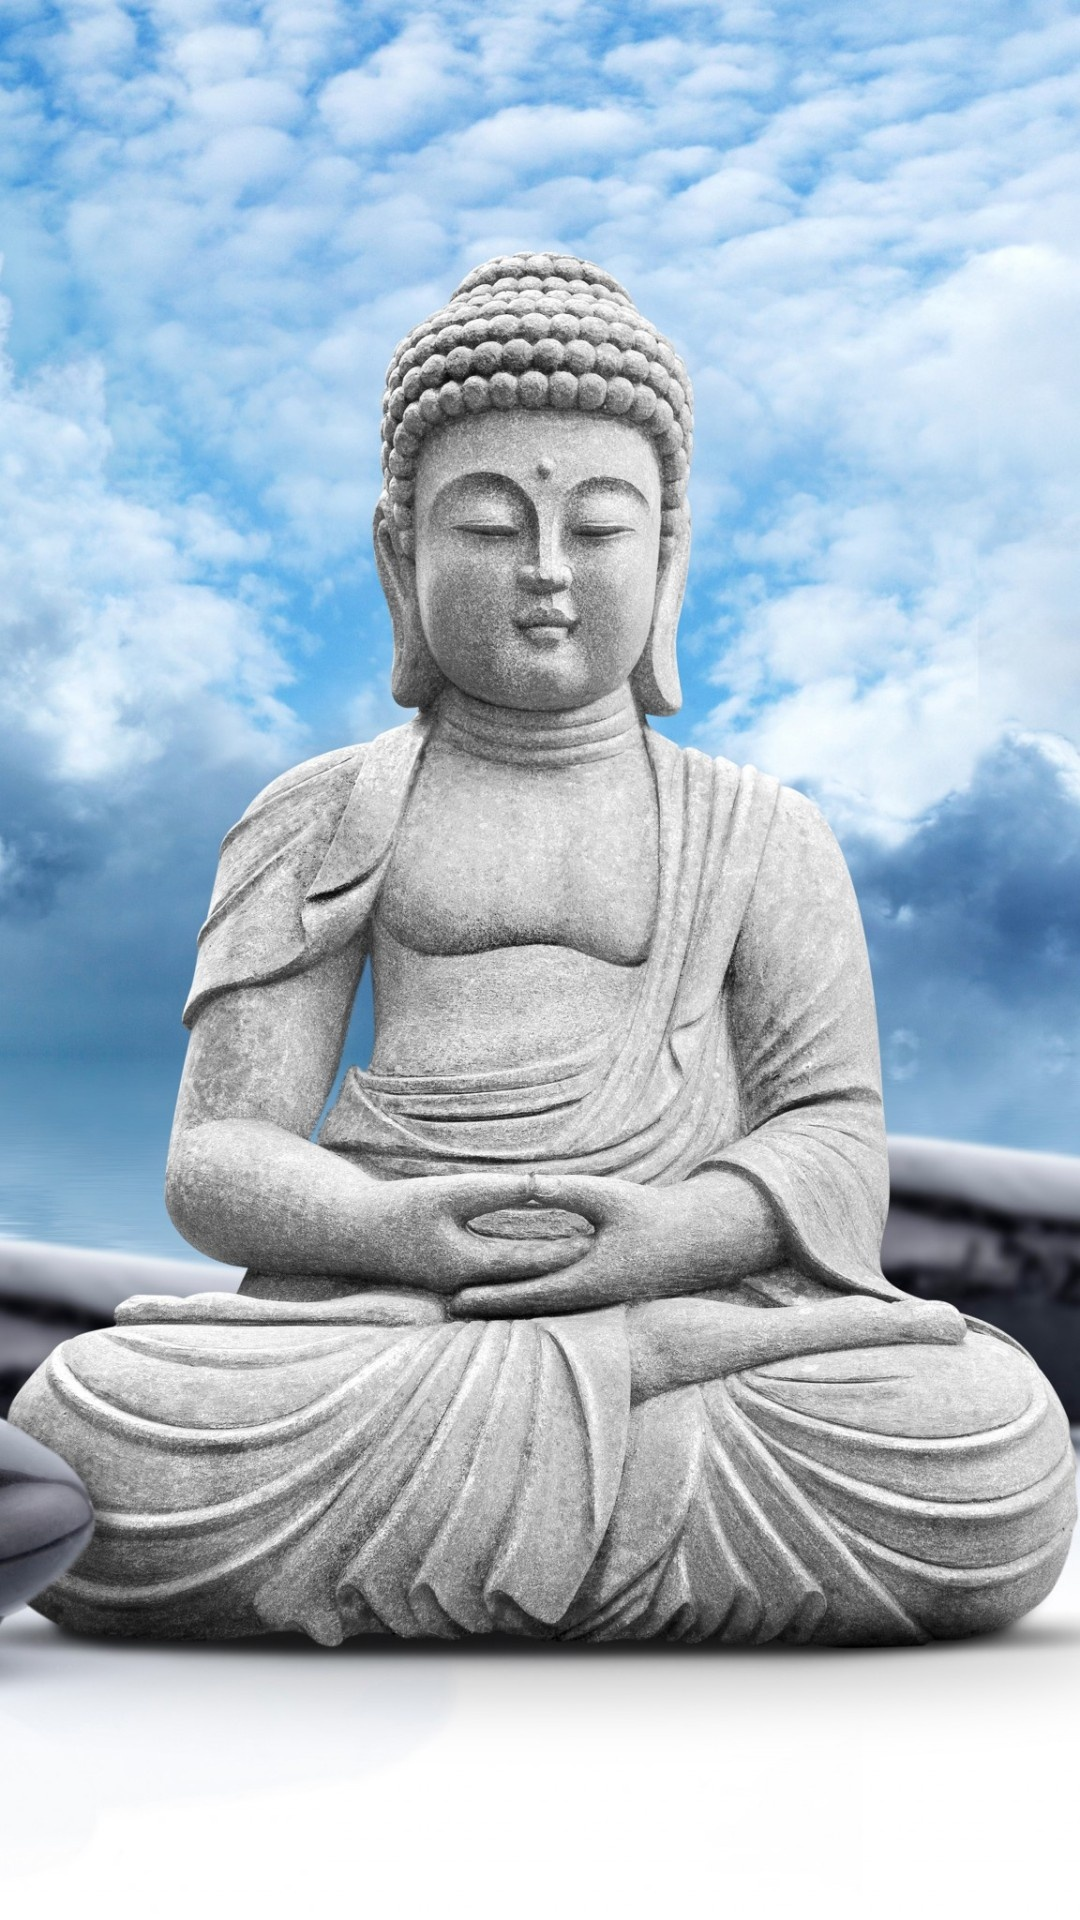 lord buddha statue sky clouds wallpapers 1080x1920 588396